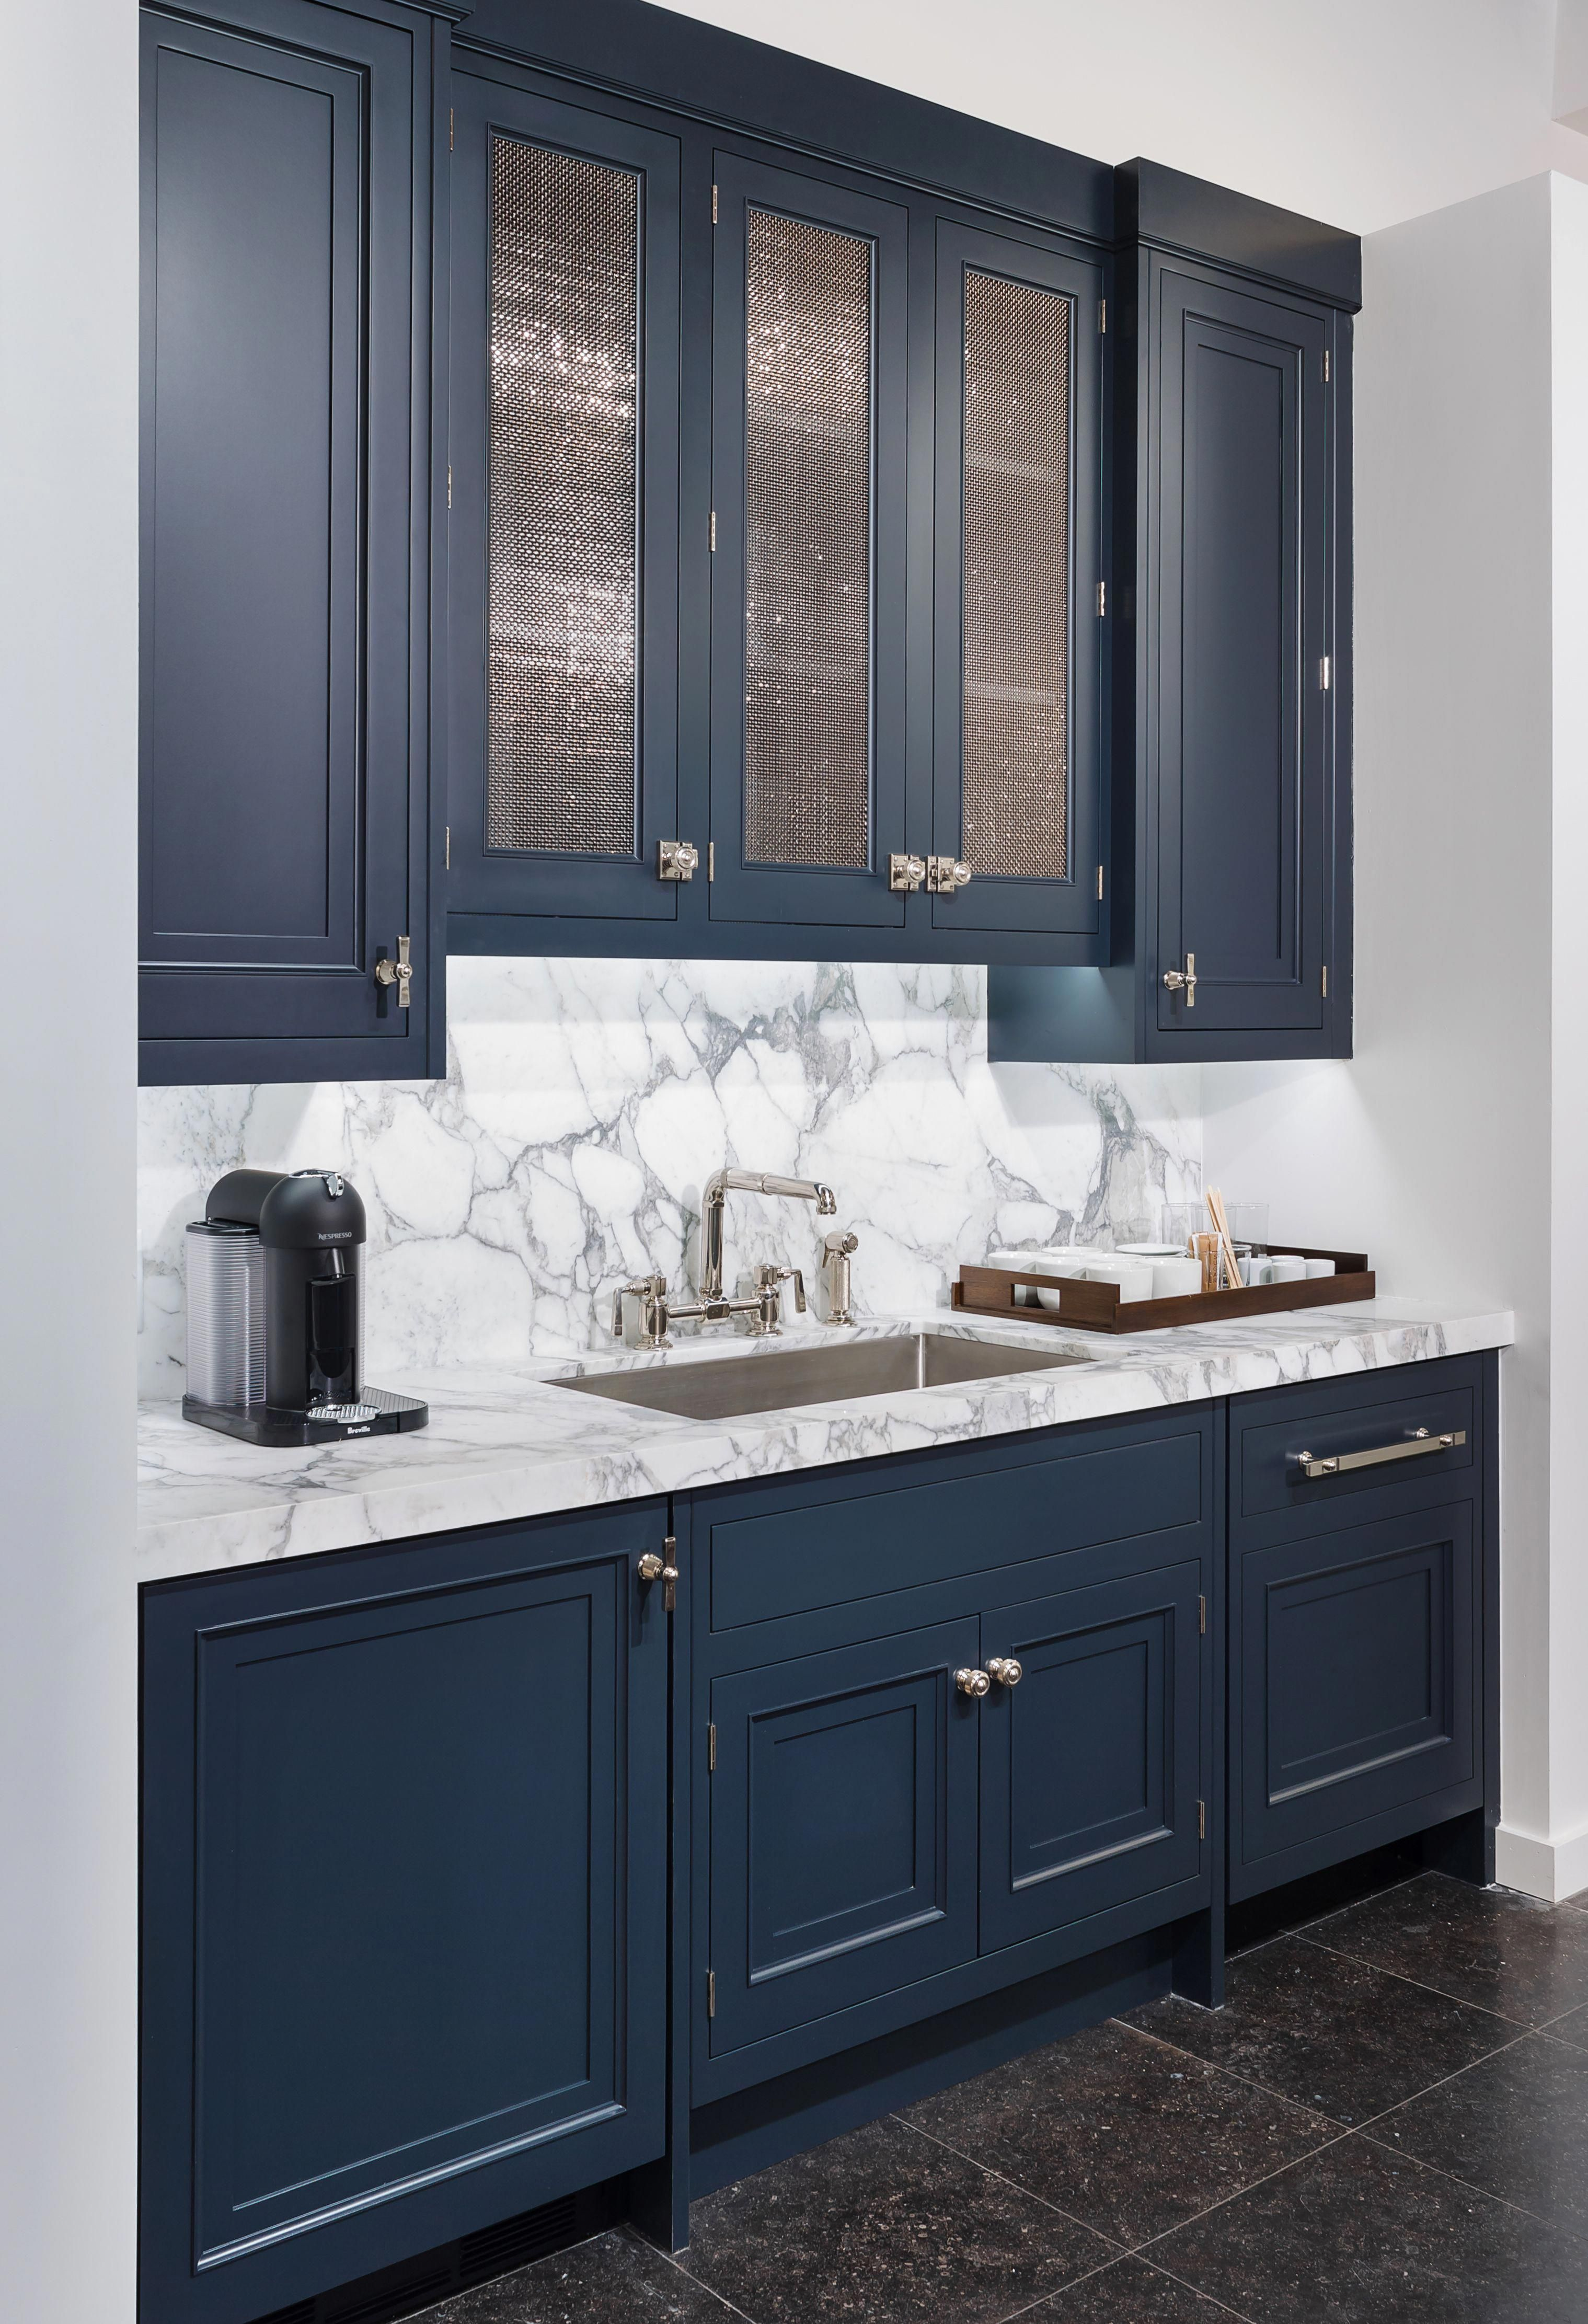 Fantastic Kitchen Cabinets And Home Storage Solutions Cliqstudios Download Free Architecture Designs Scobabritishbridgeorg